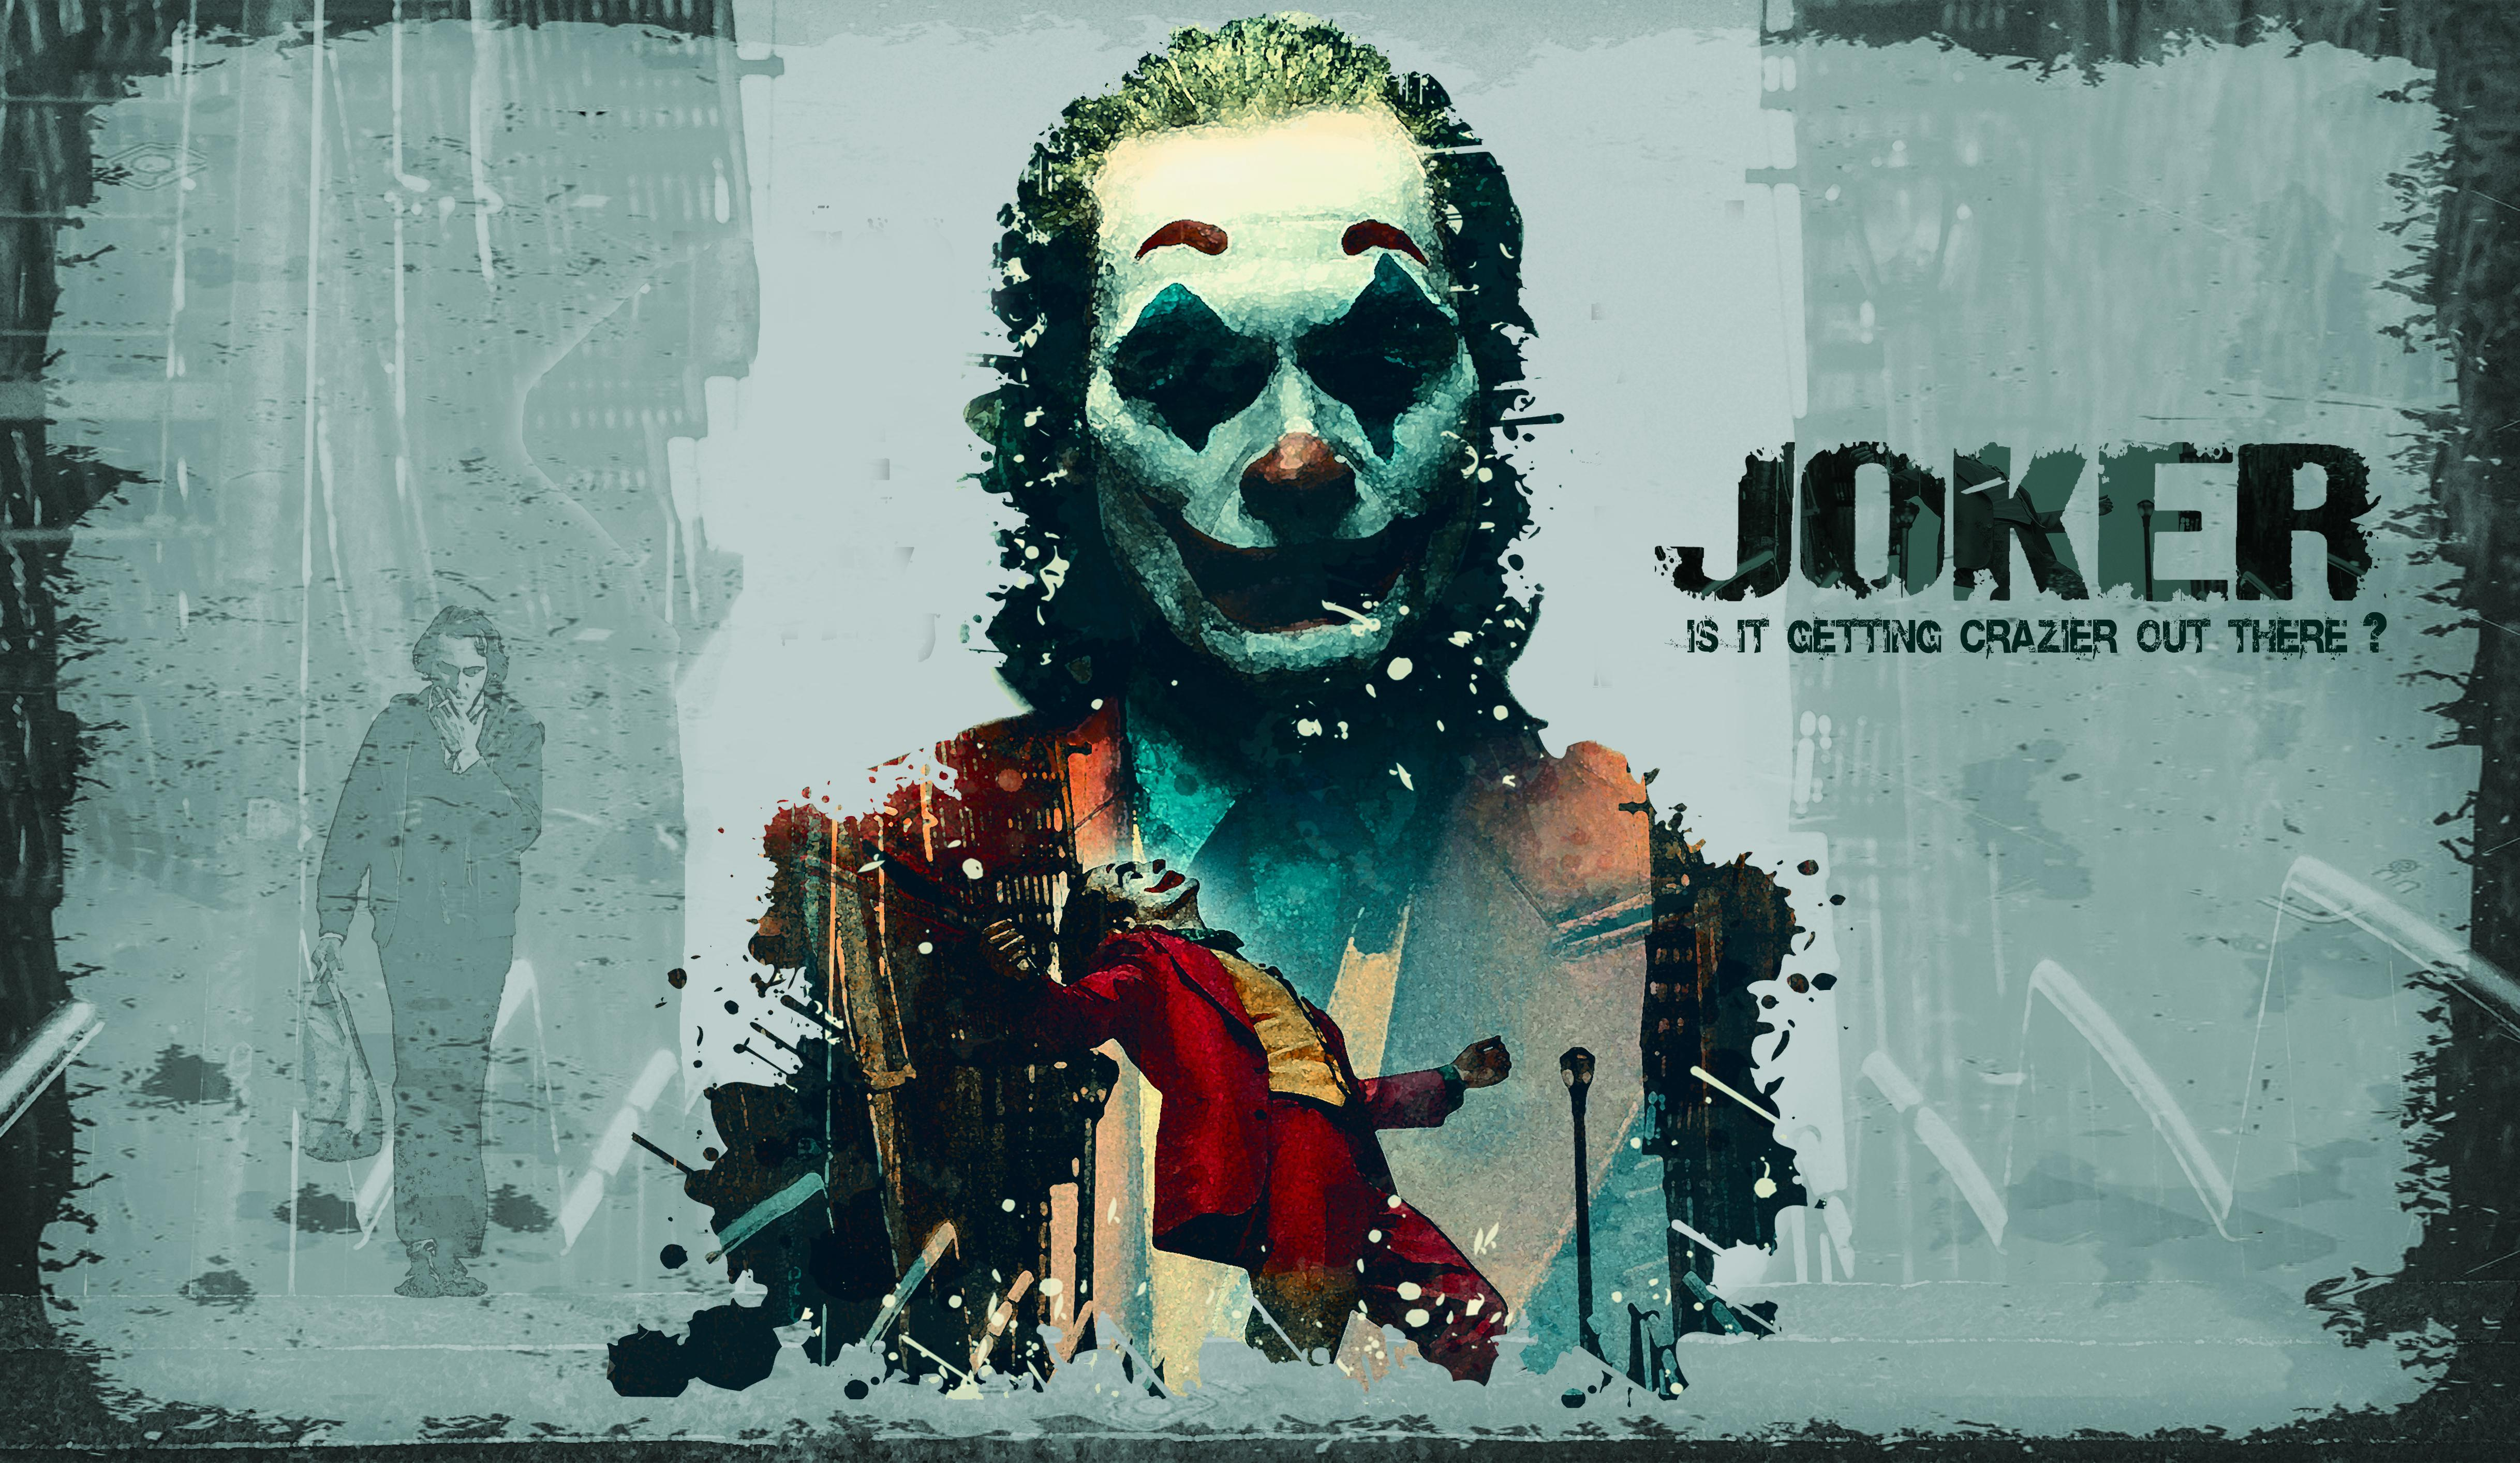 Joker 2019 Movie Wallpaper, HD Movies 4K Wallpapers, Image